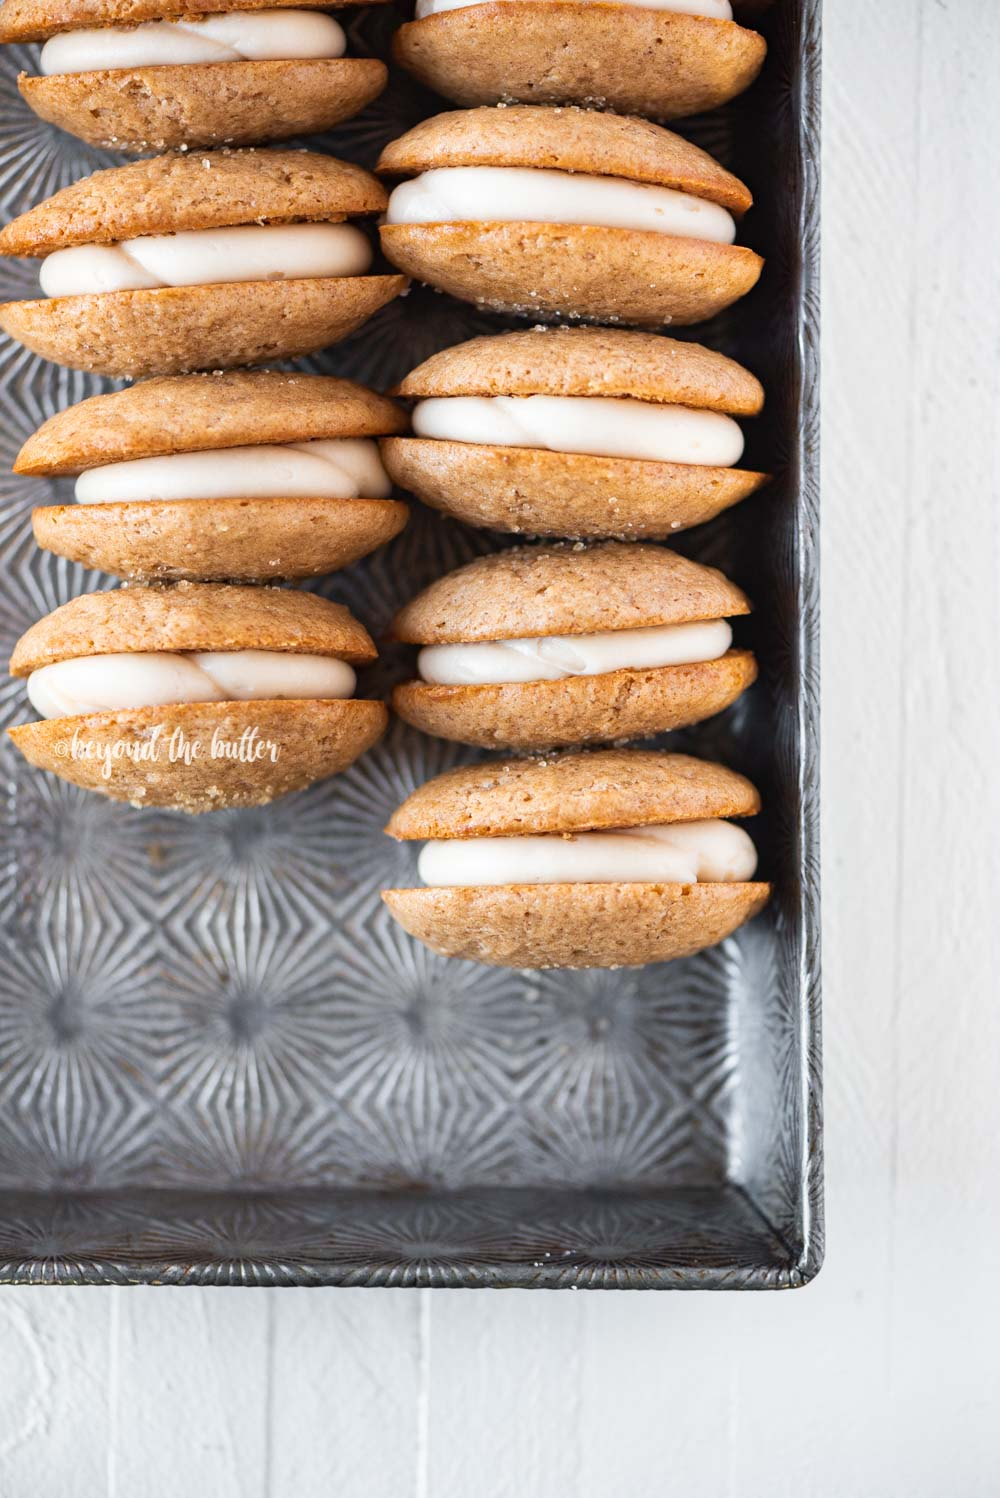 Apple Cider Whoopie Pies with Caramel Cream Cheese Frosting | All Images © Beyond the Butter, LLC